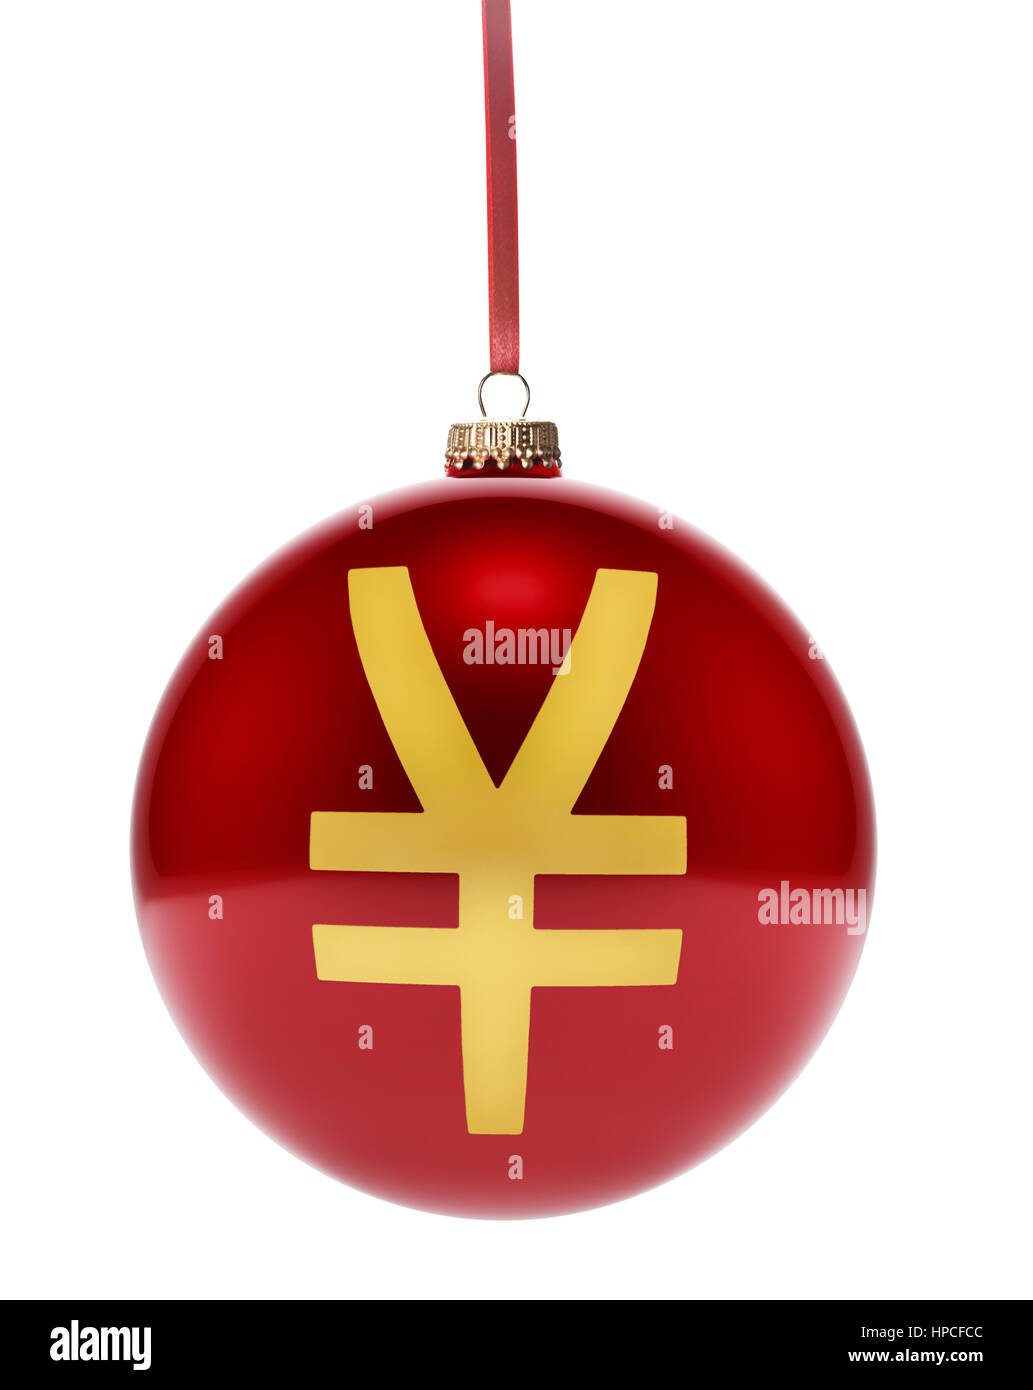 A hanging glossy red bauble with the golden shape of a Yen symbol.(3D illustration) - Stock Image